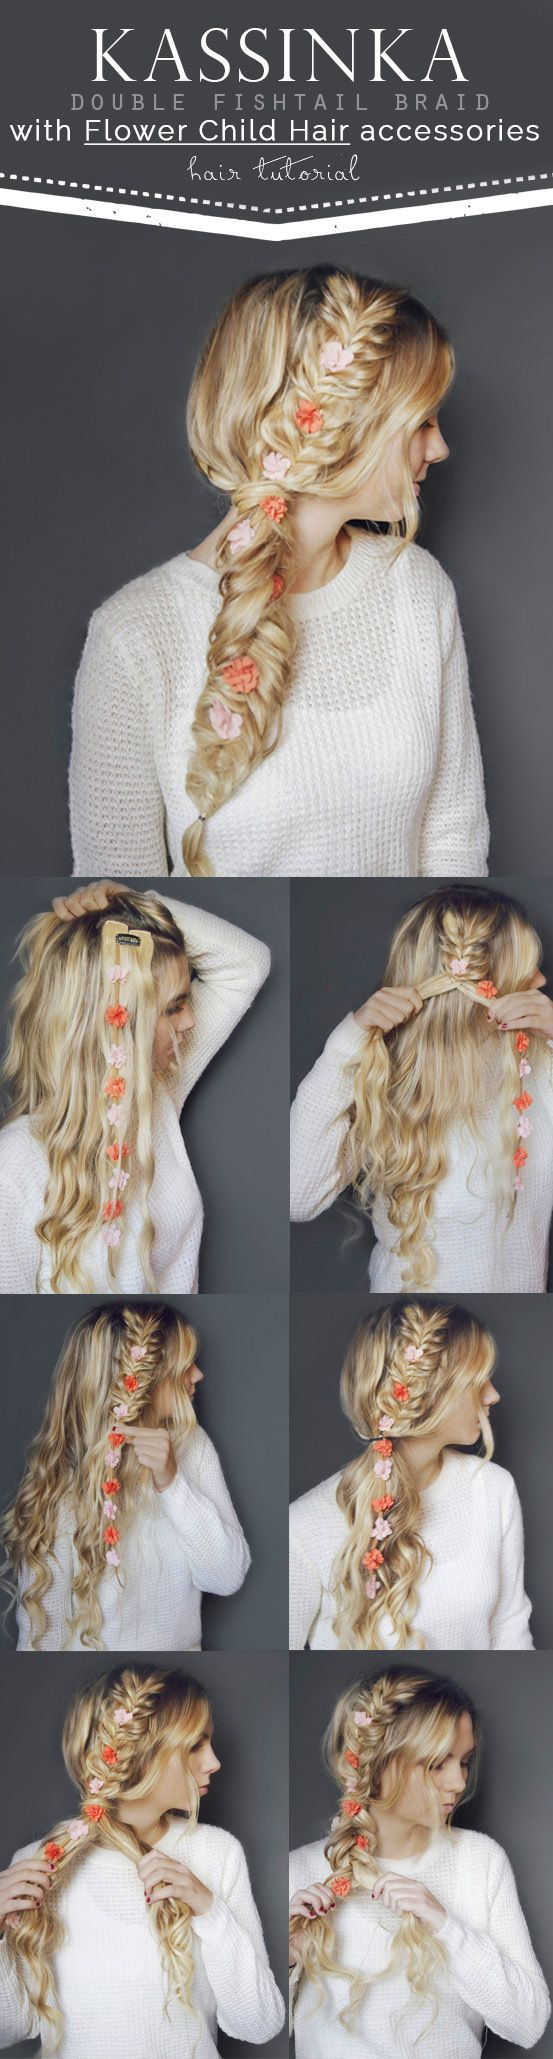 Kassinka Hair Tutorial with Bleach Blonde Luxy Hair extensions in perfect voluminous flower fishtail braid. The perfect Boho hairstyle for special occasions. Photo by: http://www.kassinka.com/double-fishtail-braid-hair-tutorial/